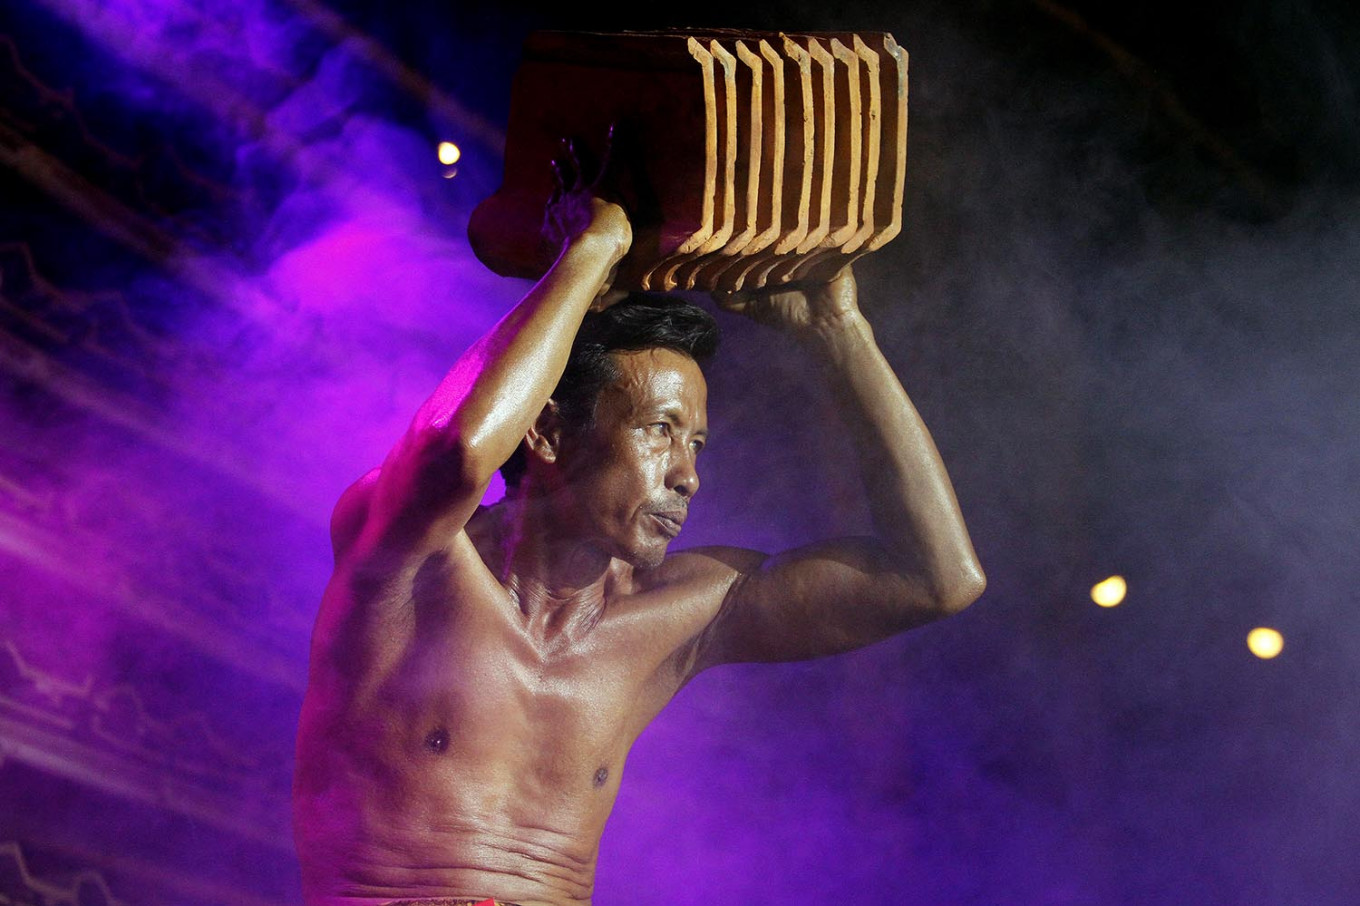 A competitor flaunts his biceps by lifting a number of roof tiles during the 2019 Jatiwangi Cup bodybuilding championship at the Dua Saudara jebor in Burujul Kulon, Majalengka, West Java, recently. The winner of the championship is not allowed to compete in the next championship. JP/Arya Dipa